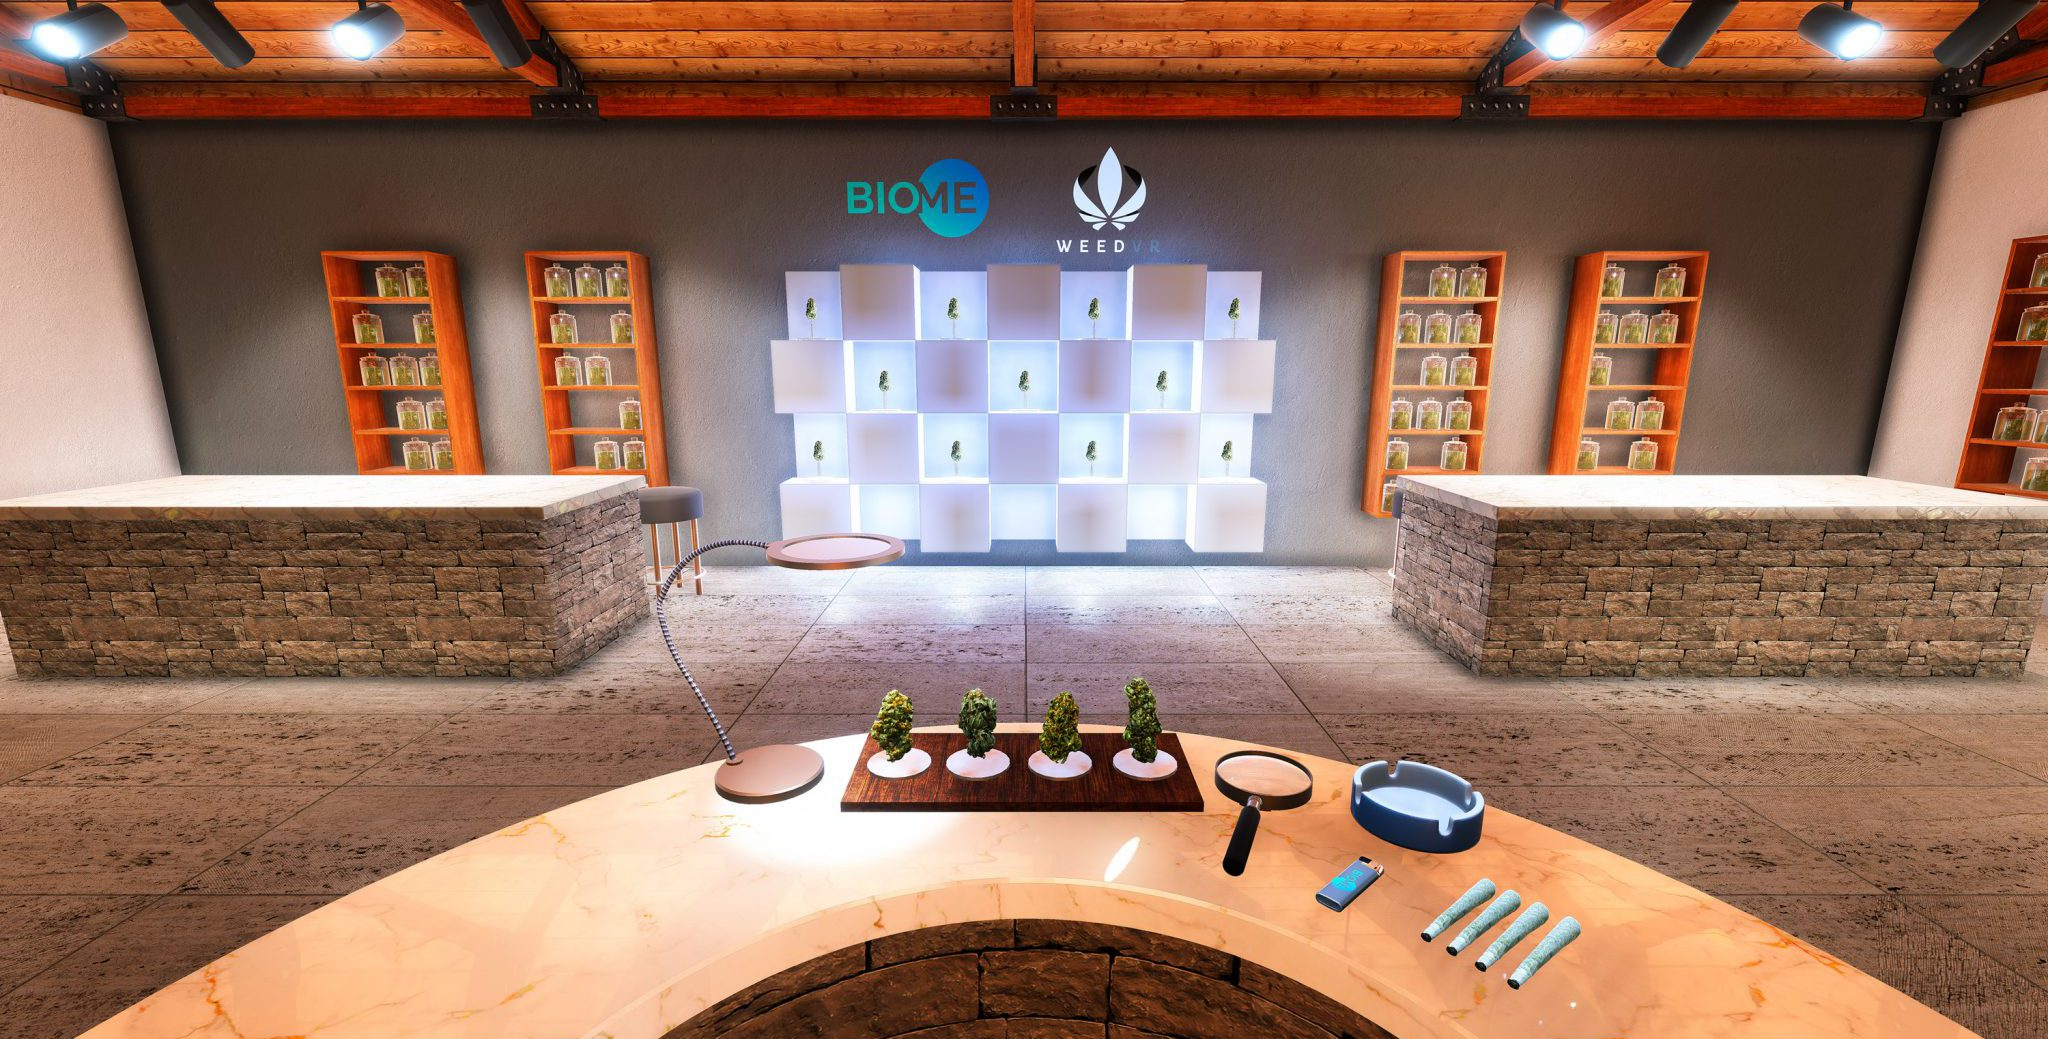 Biome Grow announces agreement to acquire Weed Virtual Retail